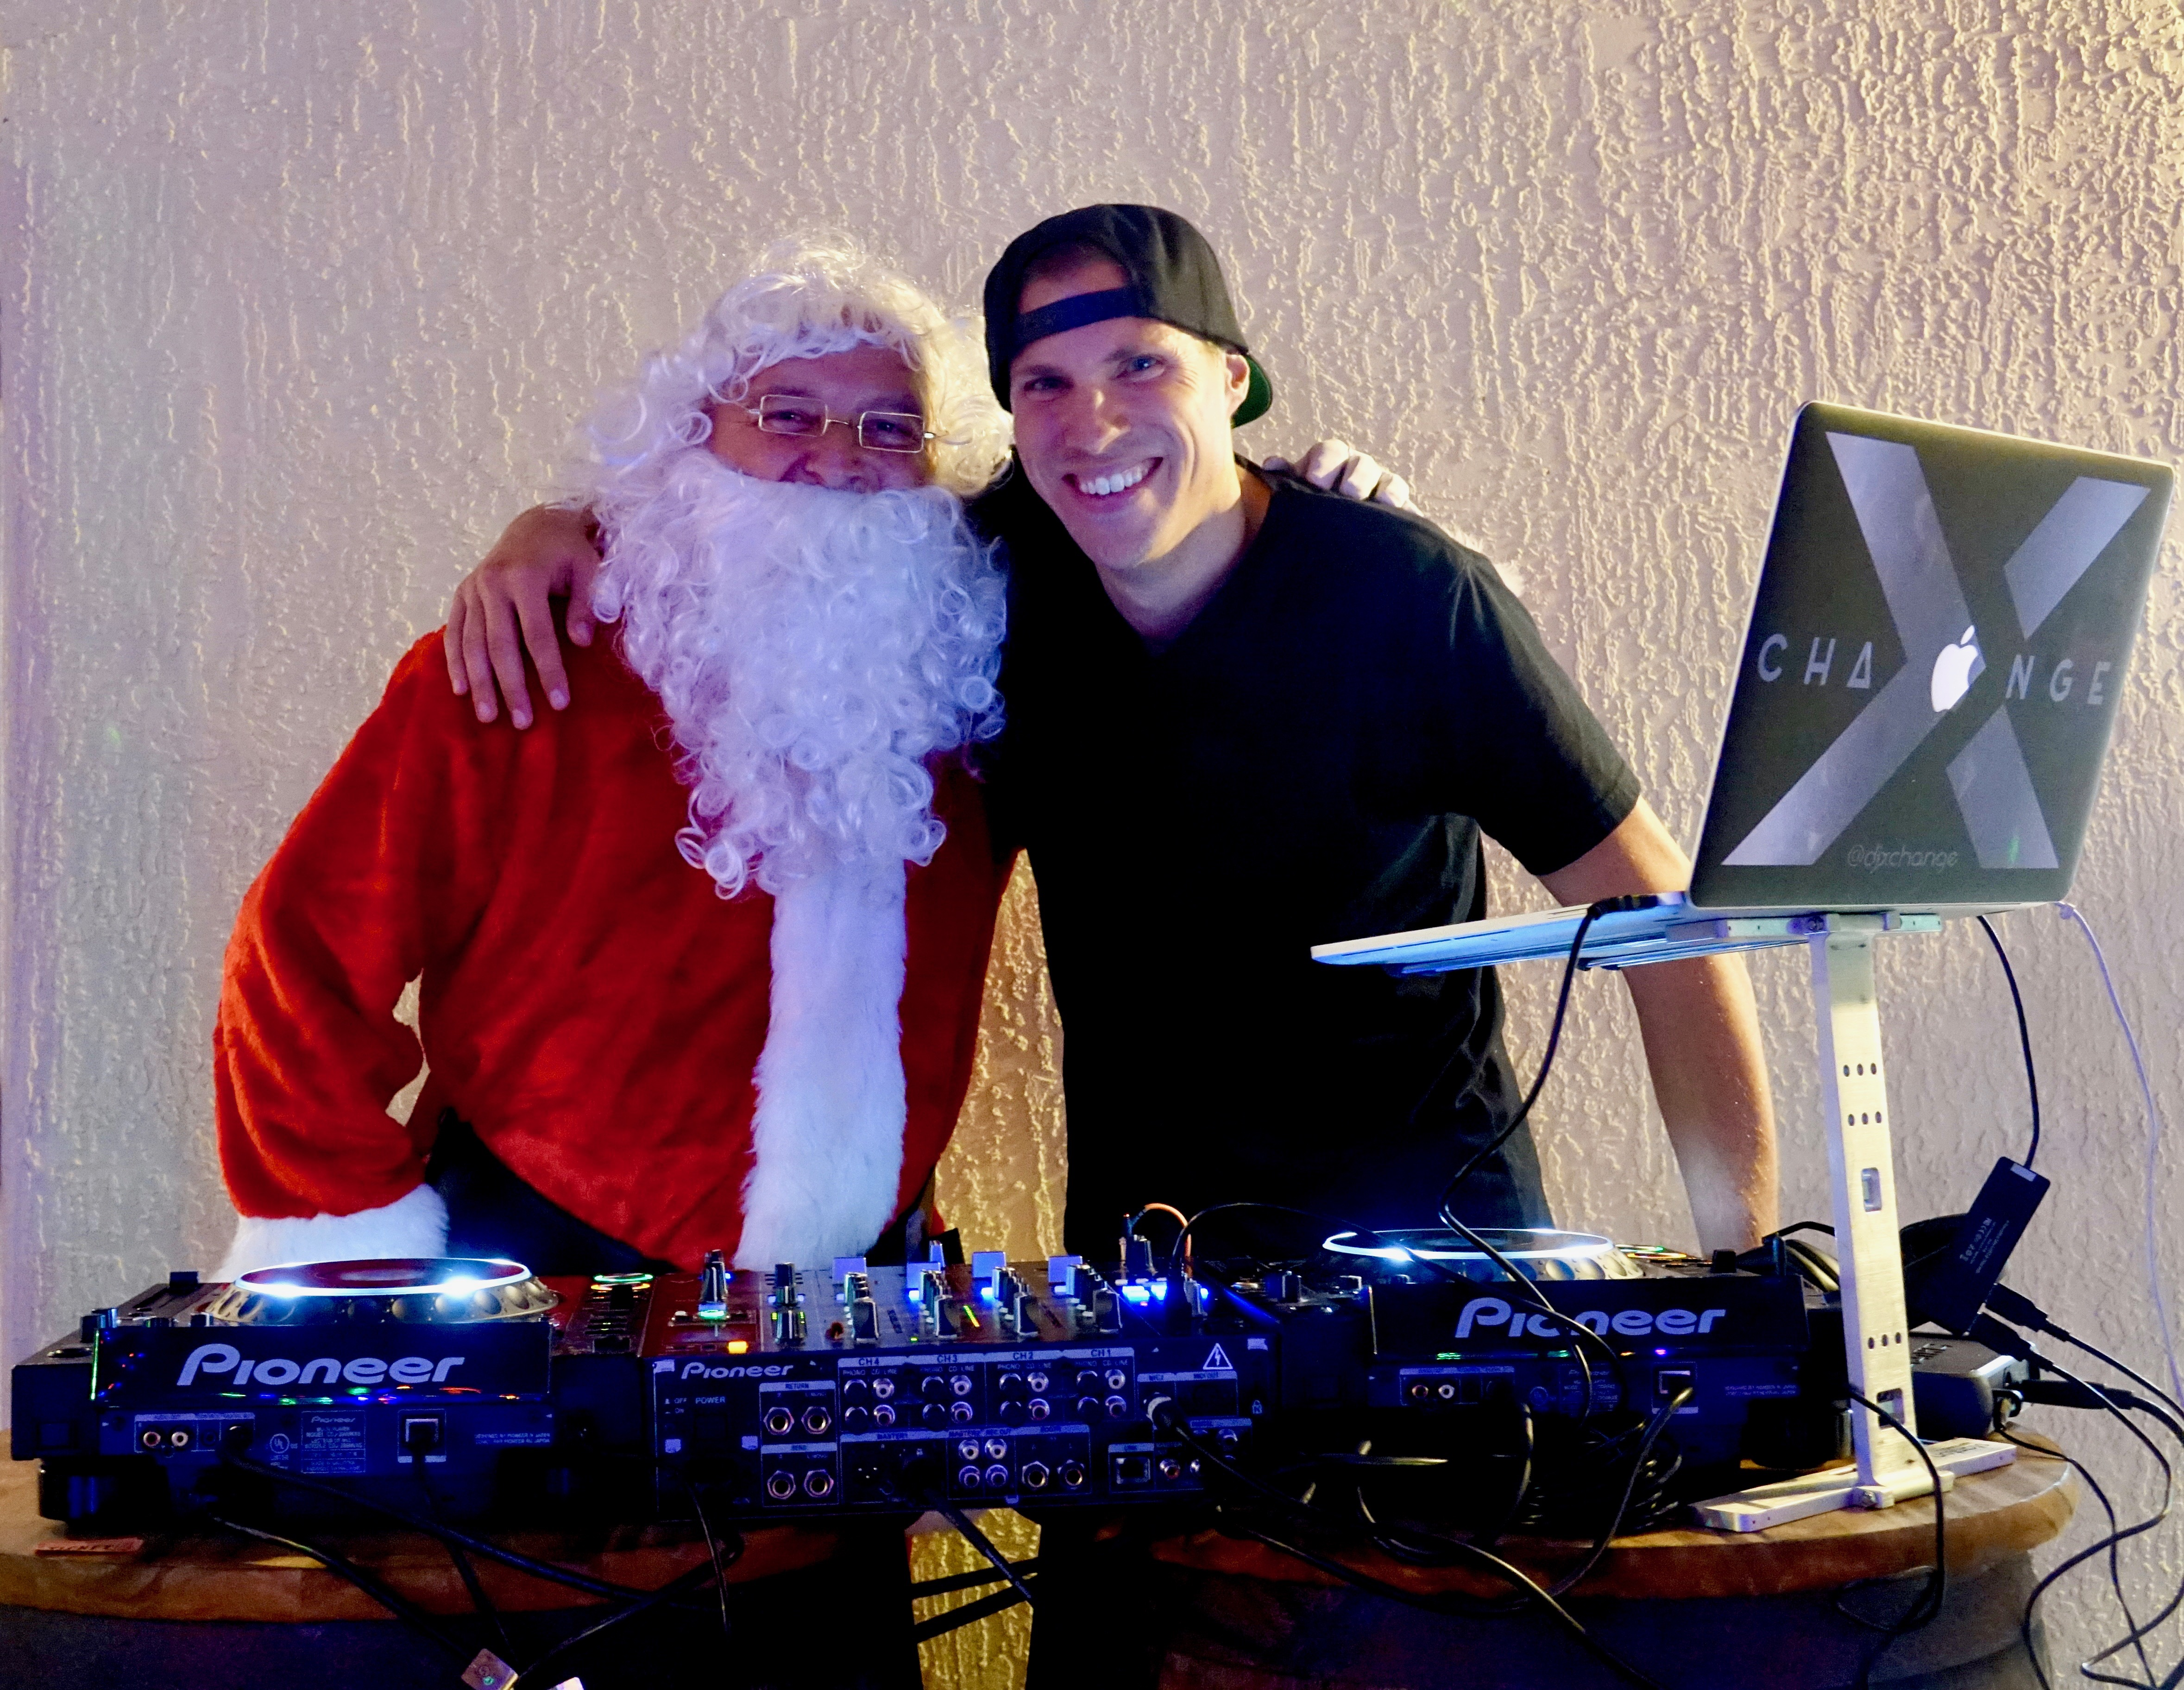 Toys For Tots 2019 X-Change and Santa Claus in DJ Booth